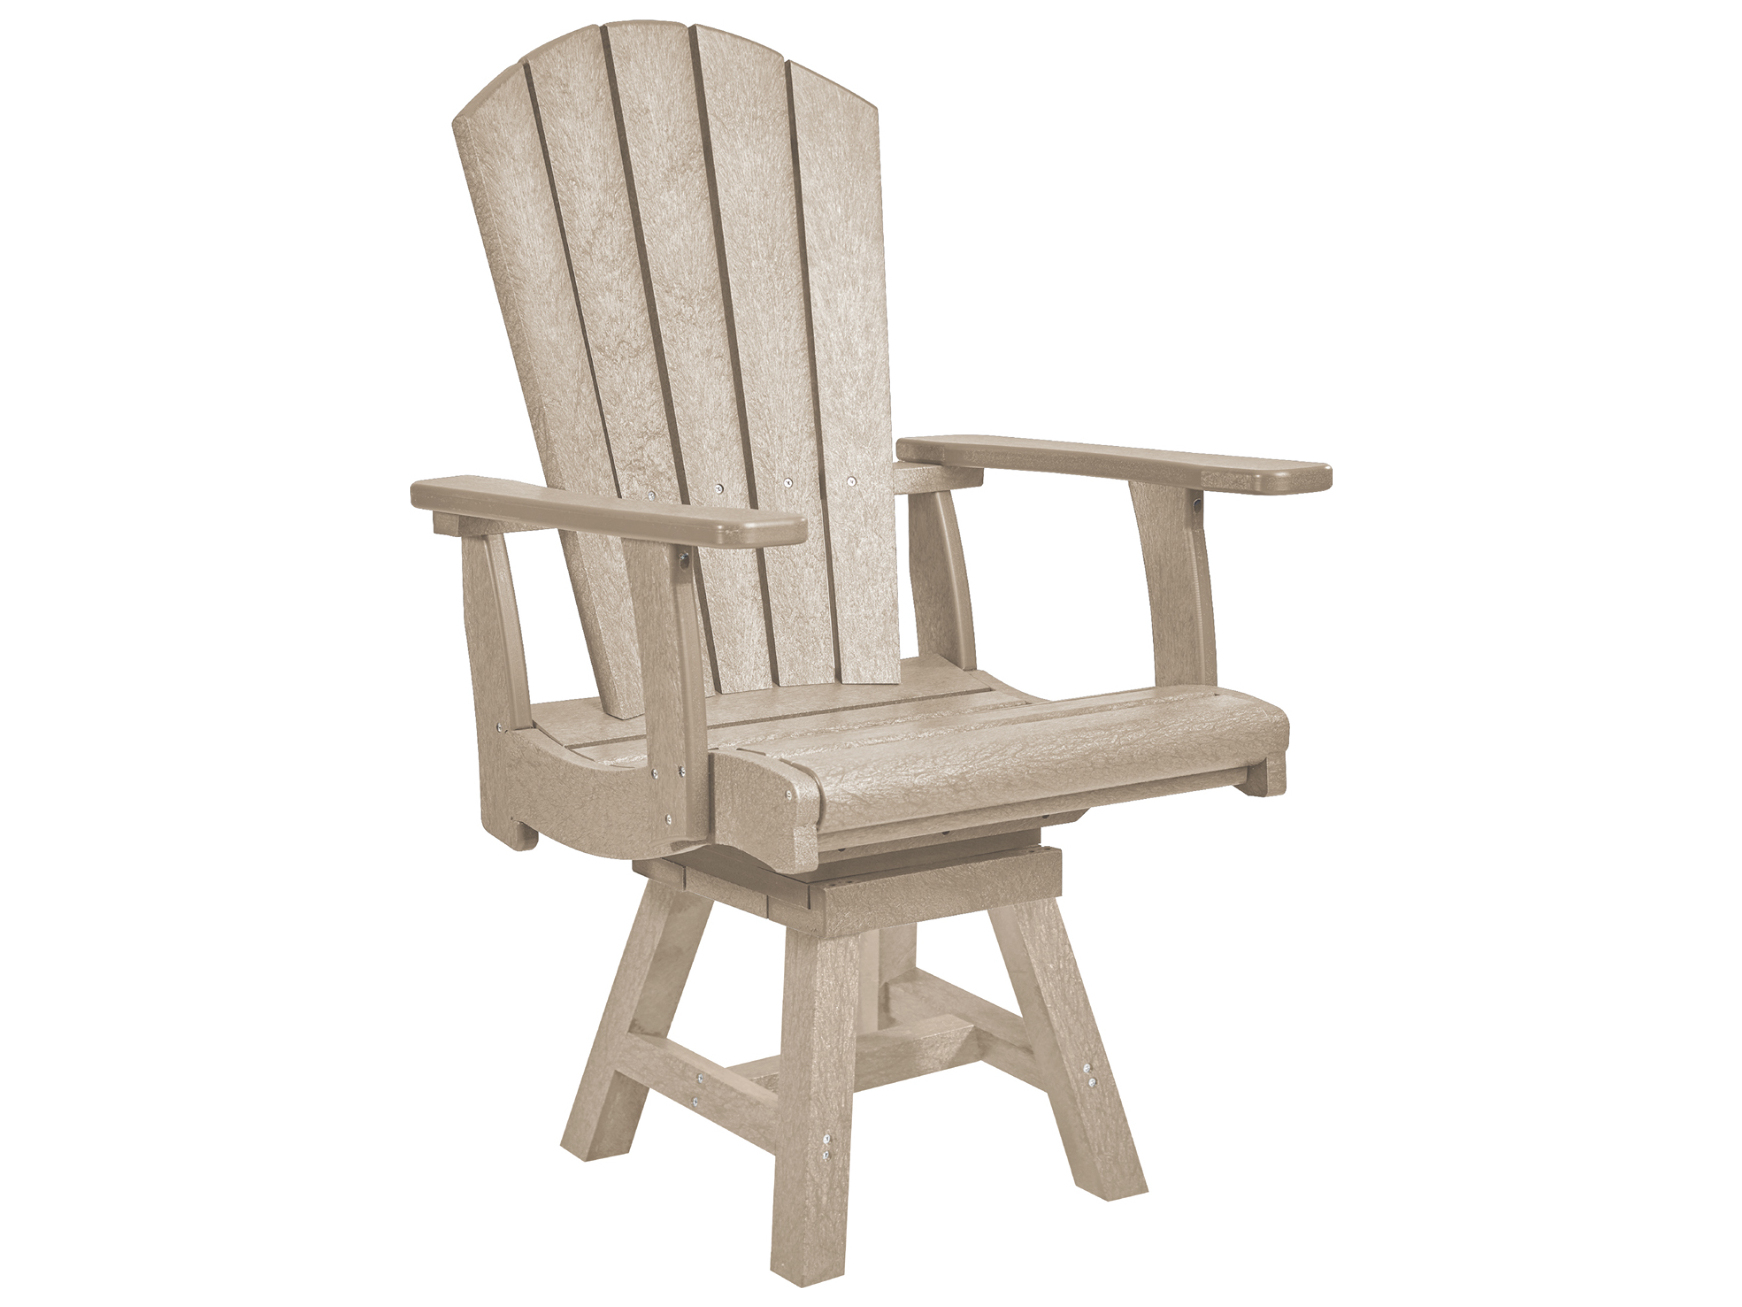 ... C.R. Plastic Generation Recycled Plastic Addy Swivel Adirondack Arm  Chair ...